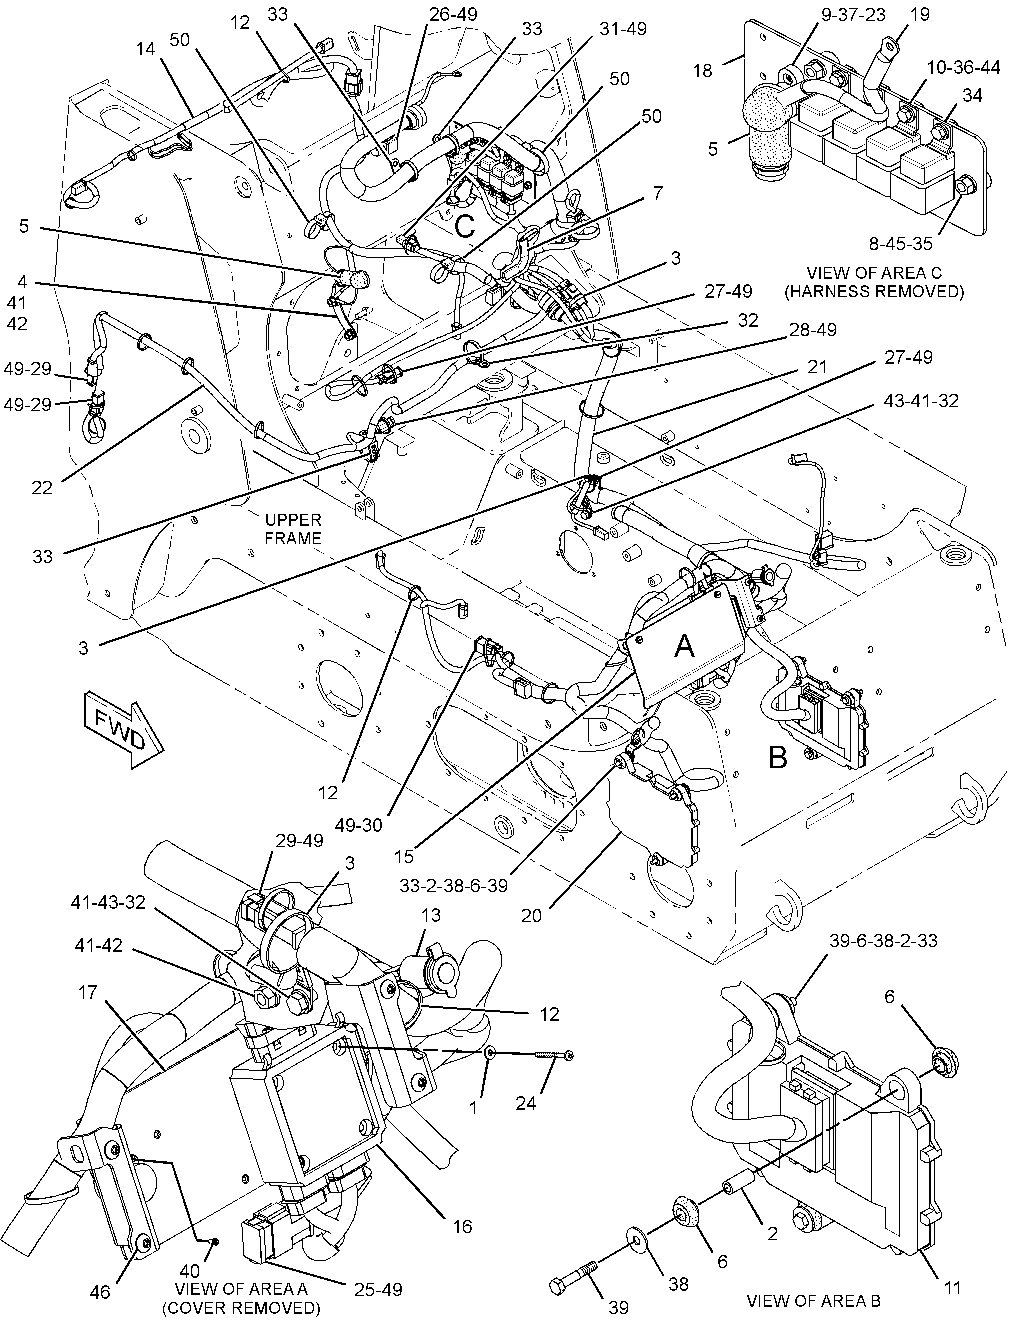 Parts Manual For Cat 257b Caterpillar Wiring Diagram I Have A The Tractor Will Start Park Light Is On And Rh Justanswer Com 247b 277b Service